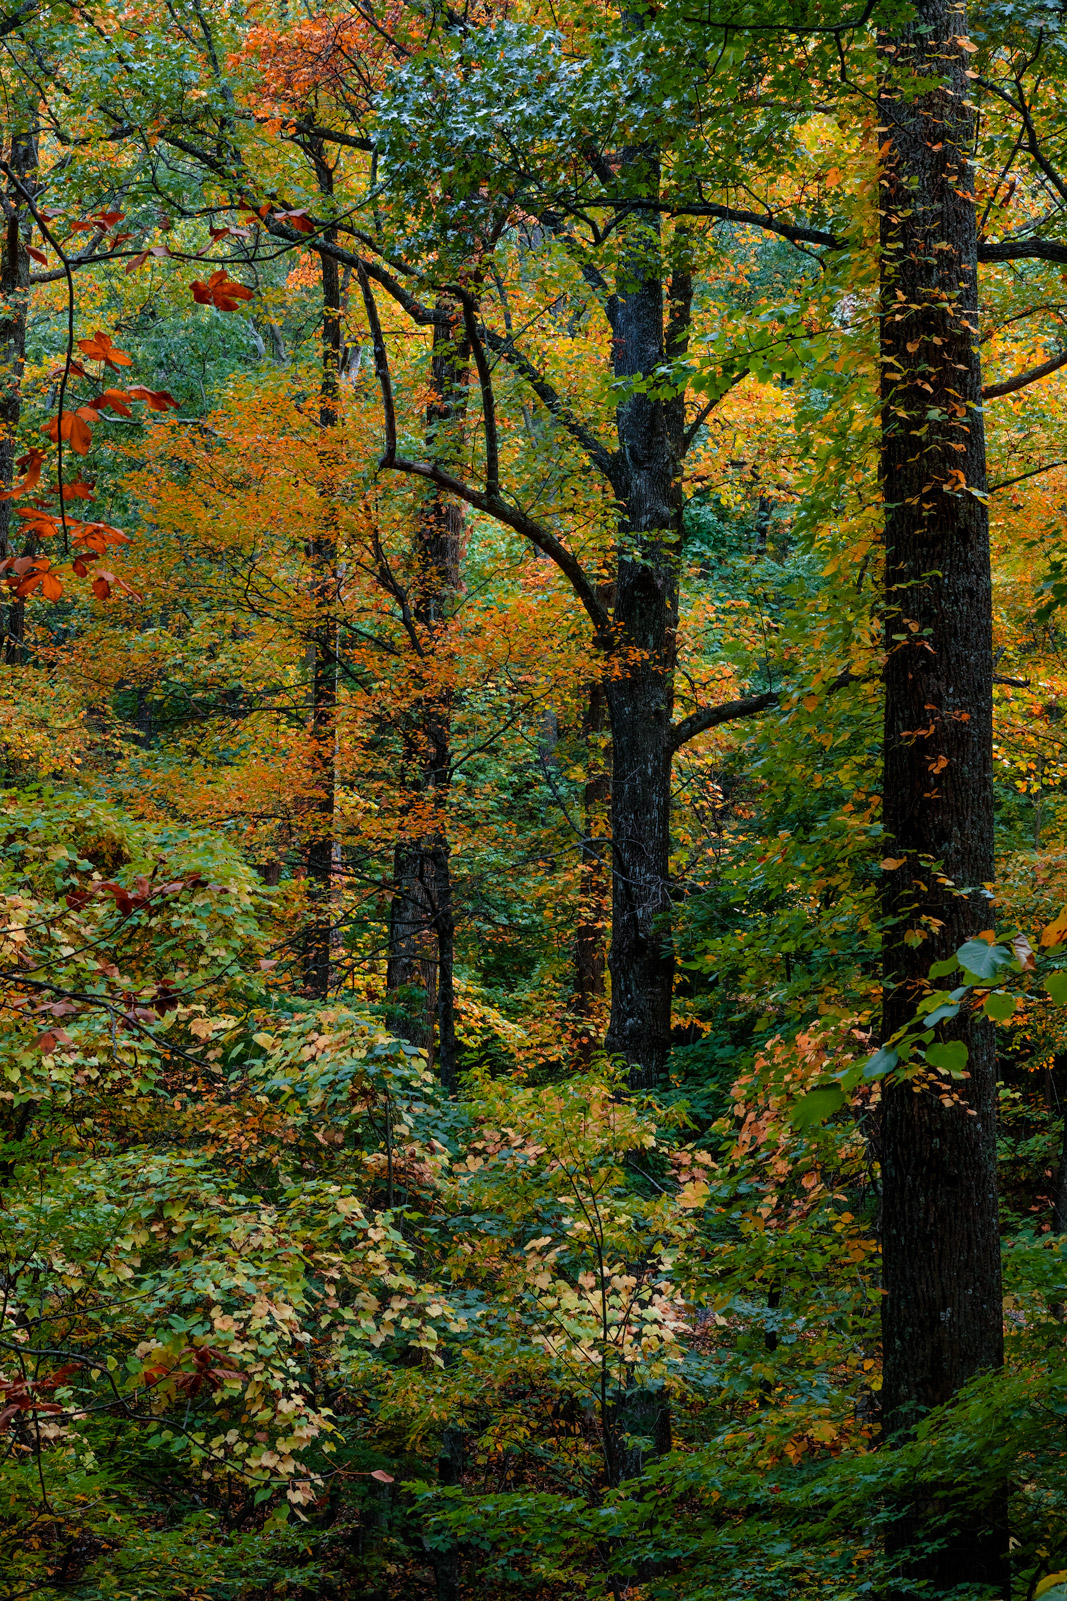 A Limited Edition, Fine Art photograph of the changing colors of the among the trees during fall in a forest in the Georgia mountains...